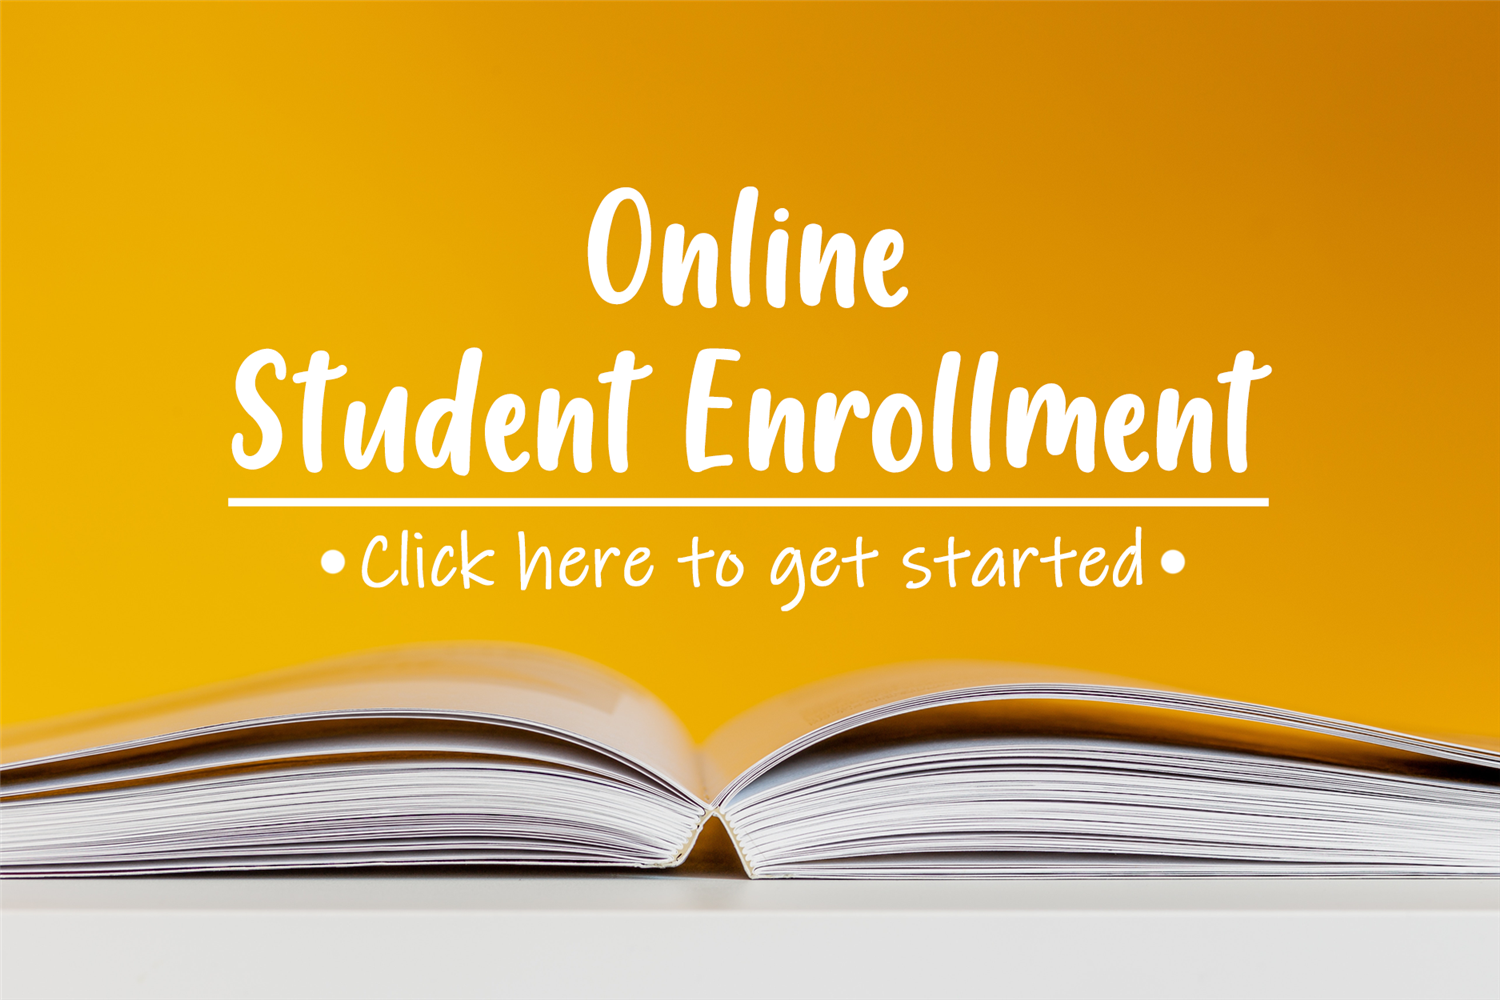 Online Student Enrollment - Click Here to get Started